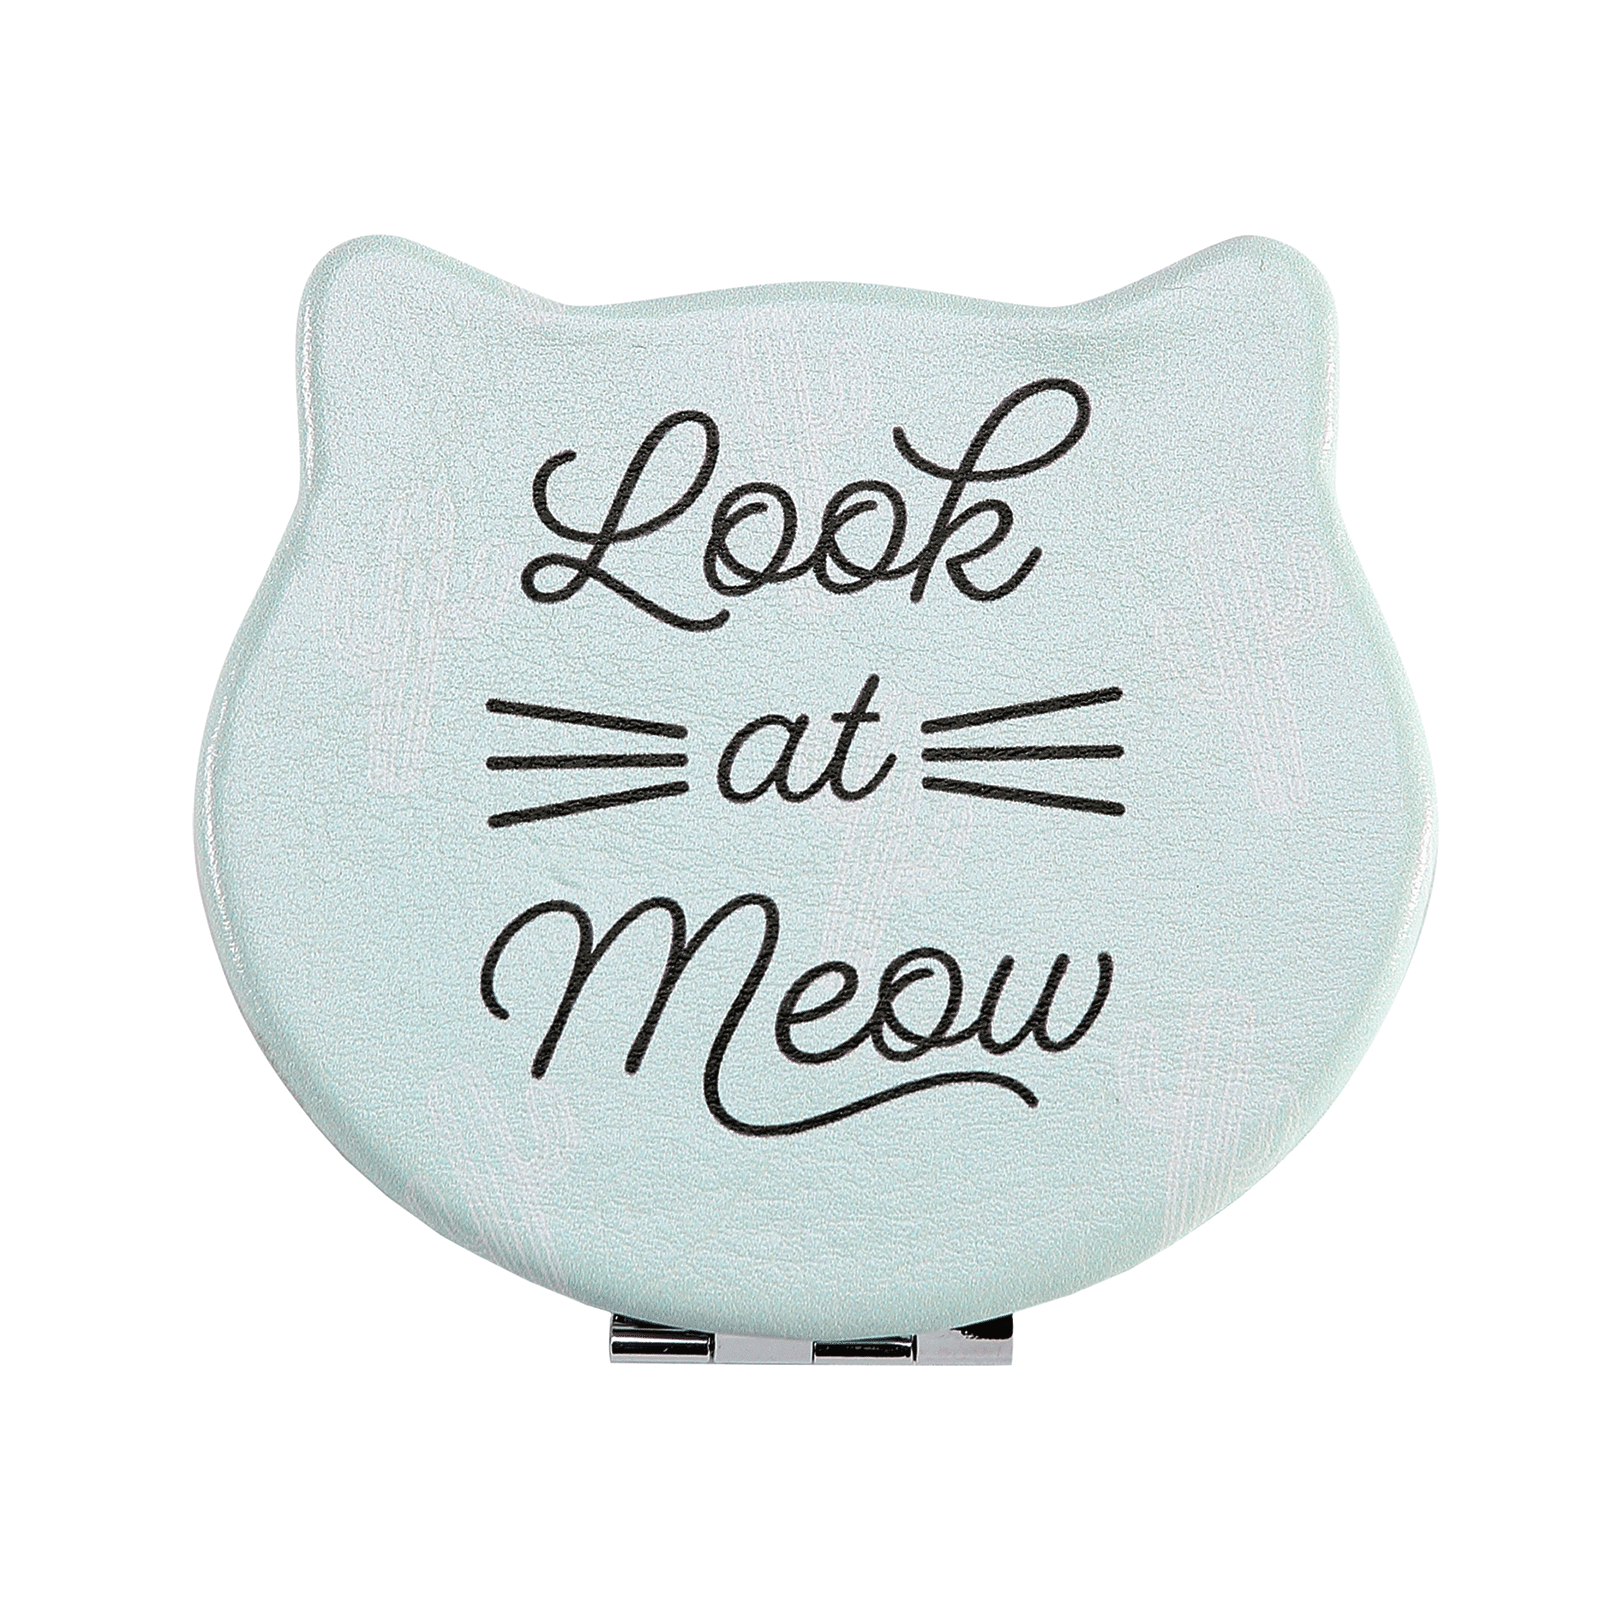 Desert Bloom Kitty Mirror Look At Meow